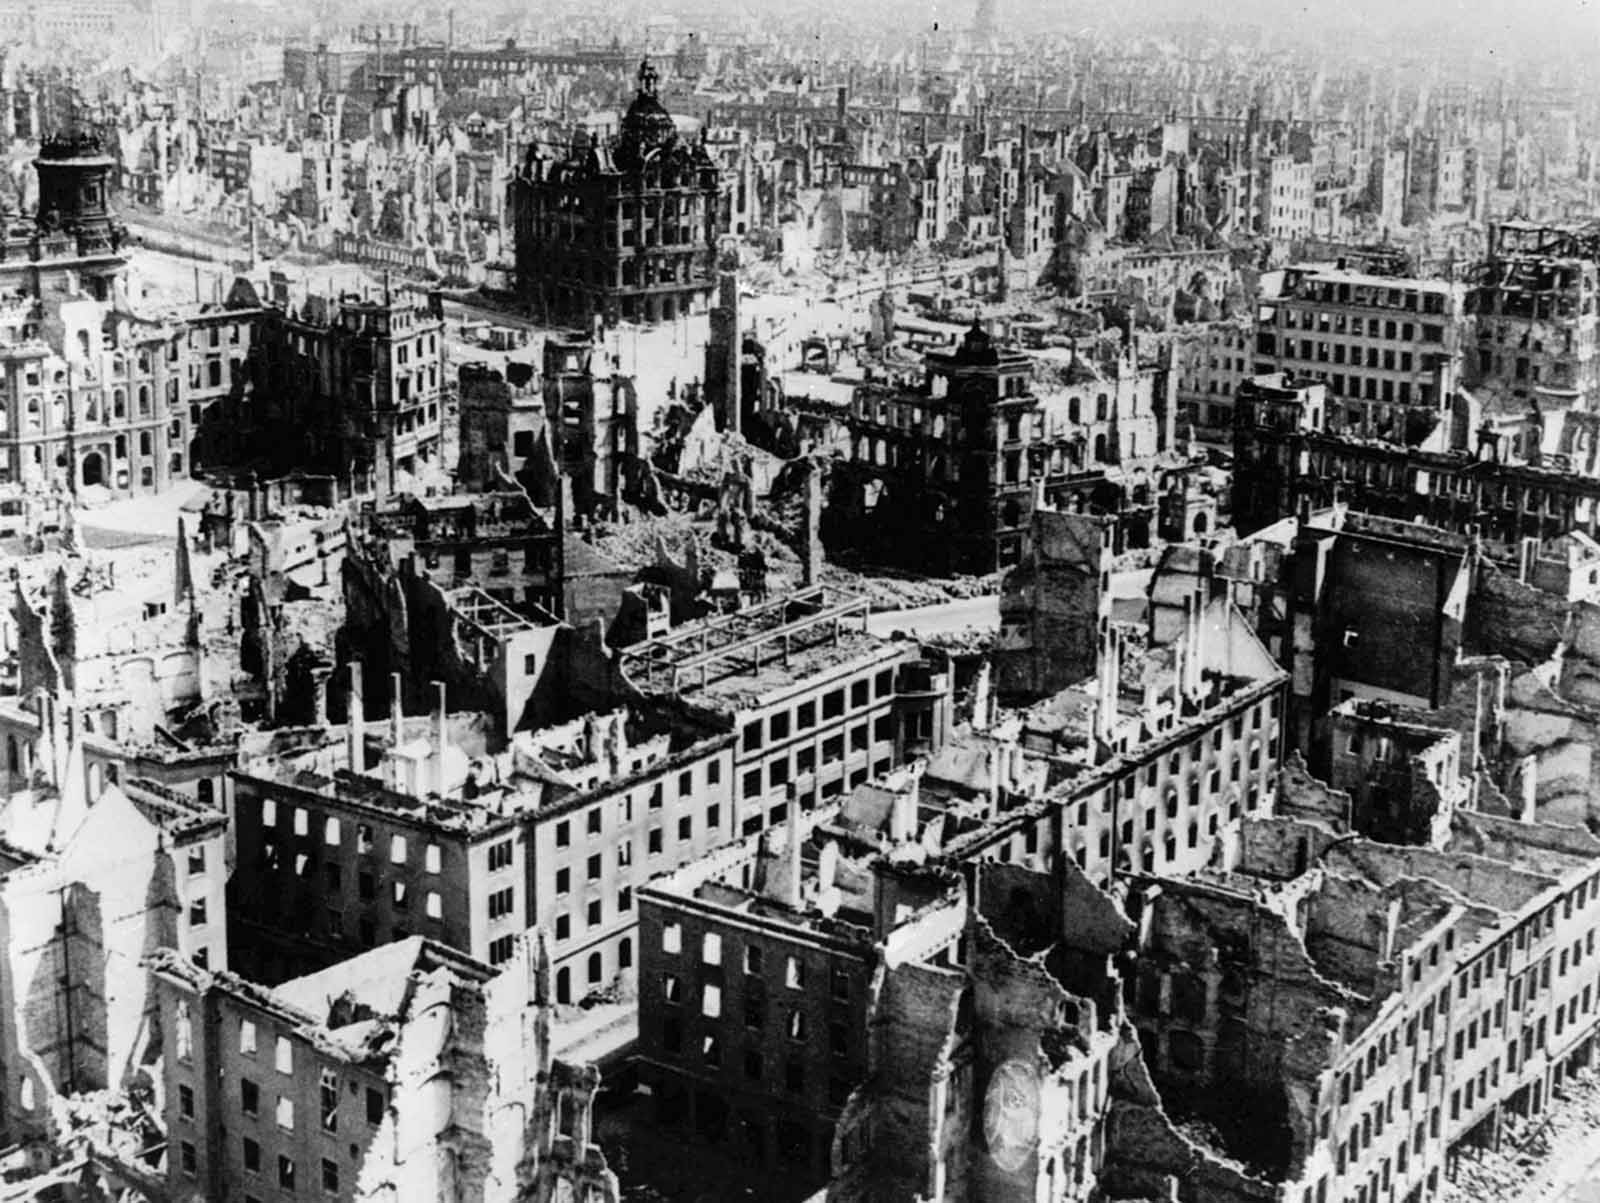 The demolished city of Dresden.